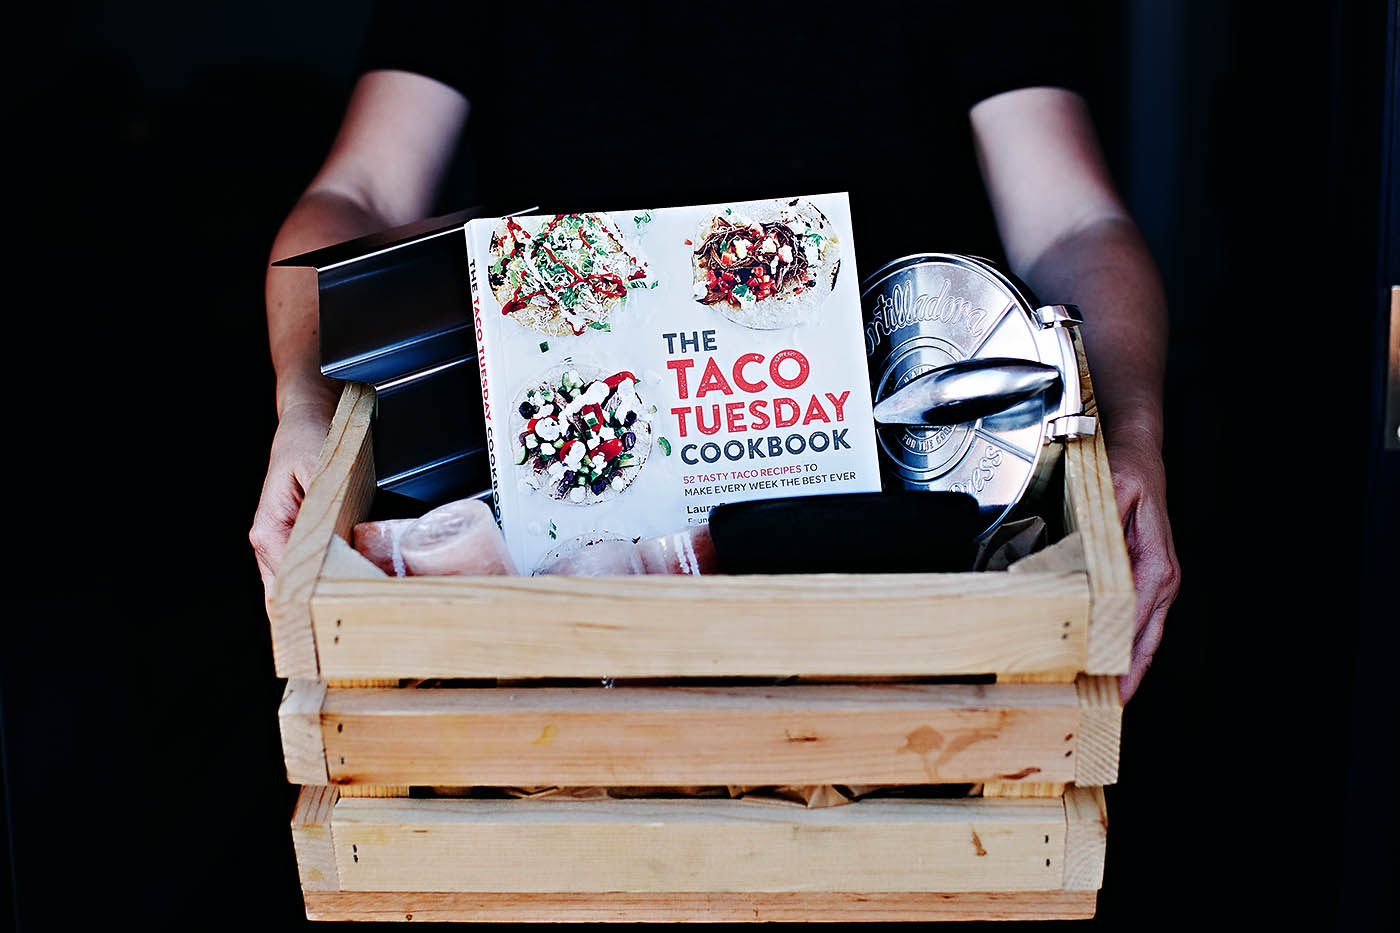 DIY taco gift basket ideas - love this for a unique christmas gift! #giftideas #giftbasket #tacos